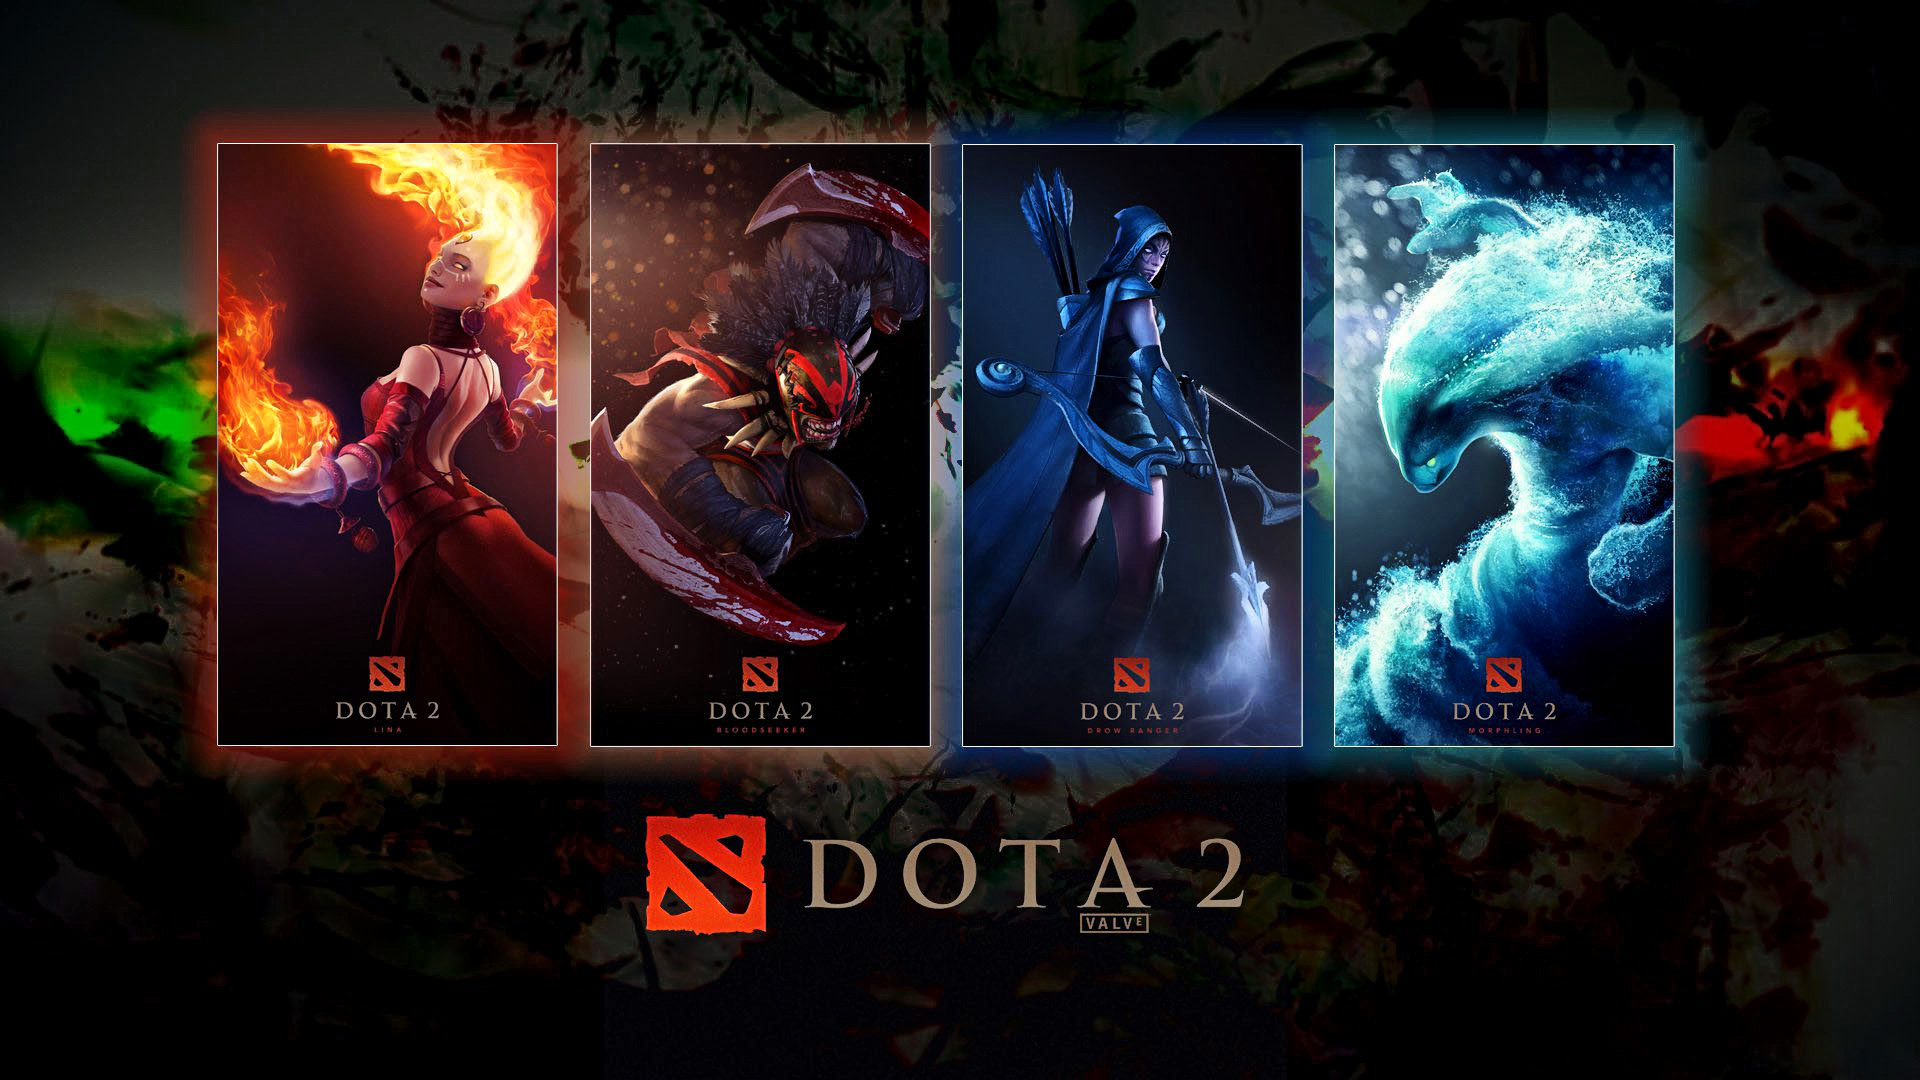 1920x1080 Dota 2 Wallpaper Hd Top 33 HD Images Original HQ